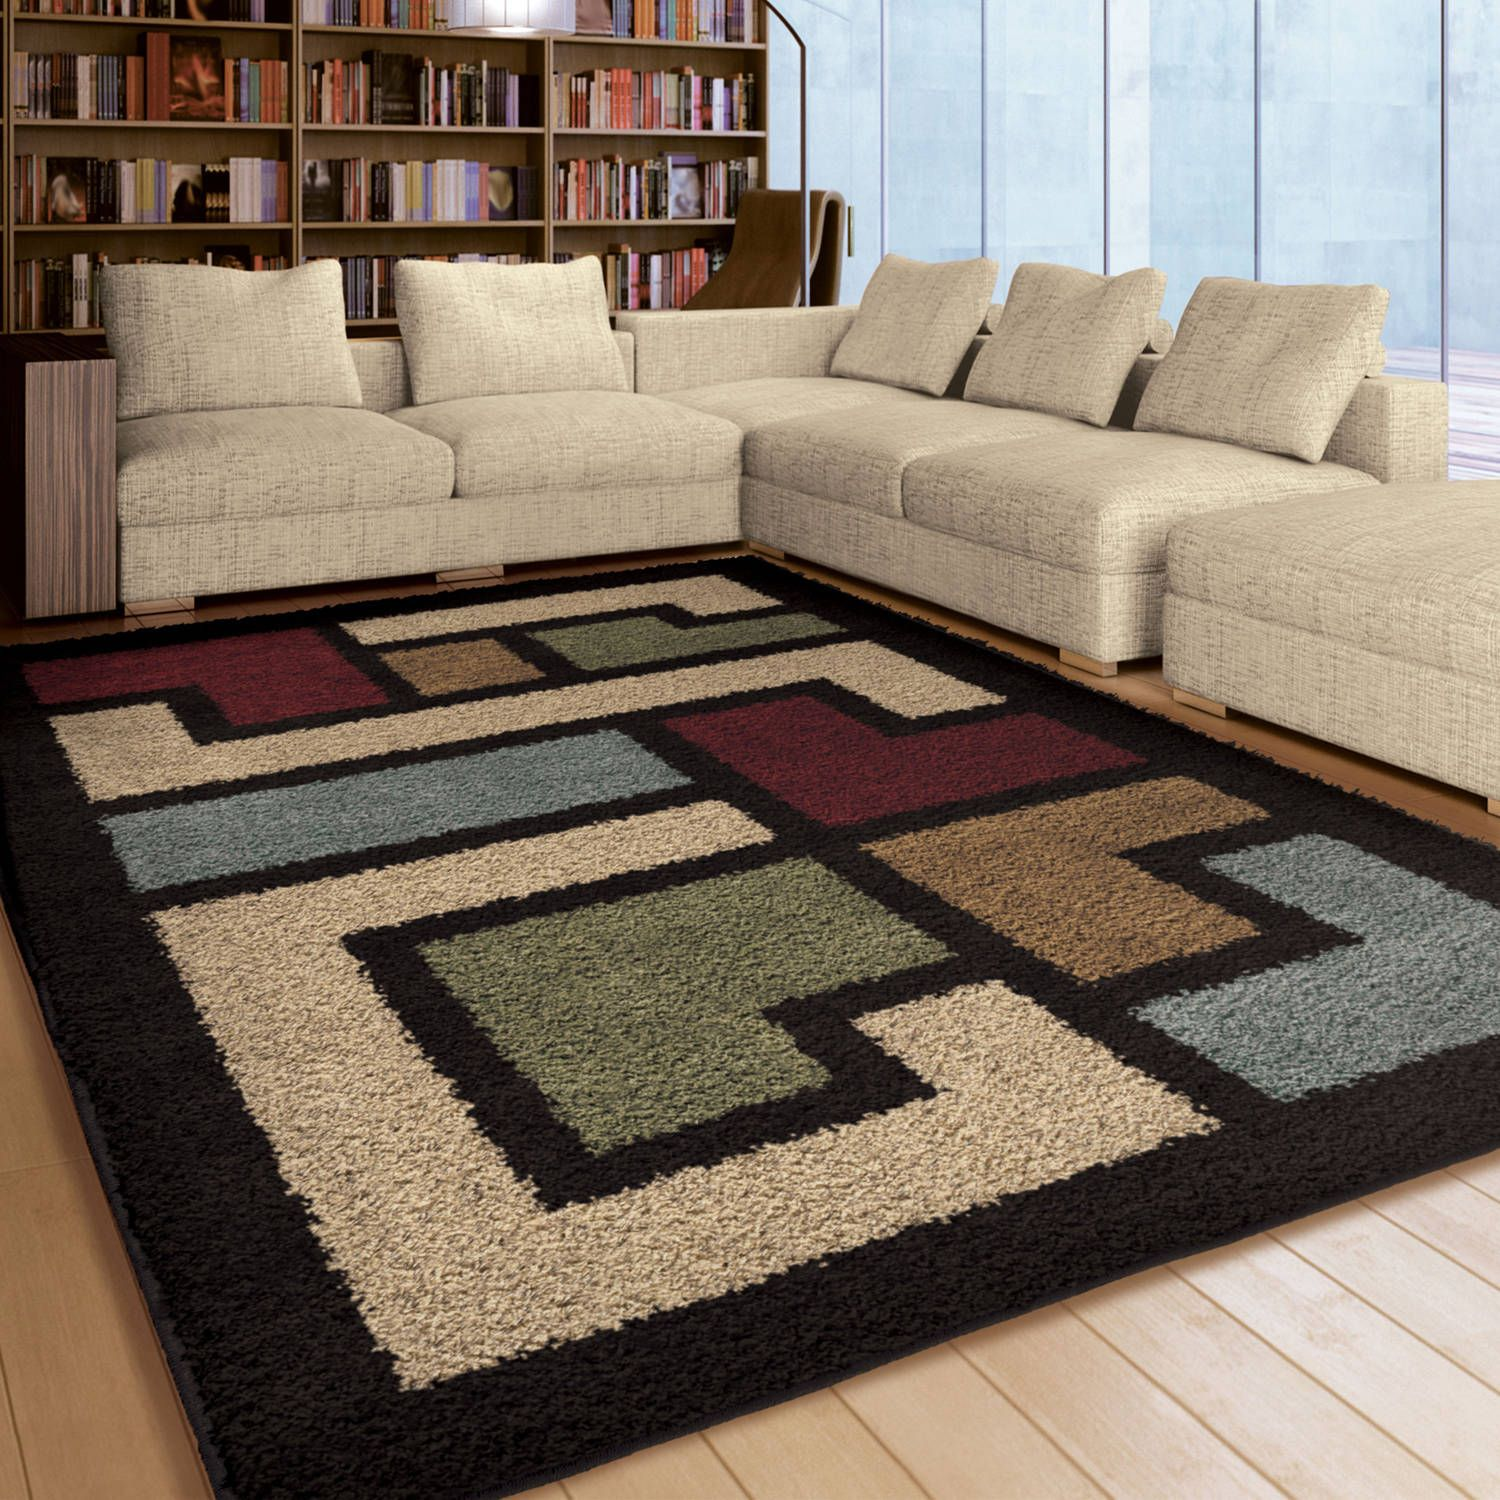 Pleasant Orian Rugs Soft Shag Mapped Floor Multi Colored Area Rug Download Free Architecture Designs Embacsunscenecom